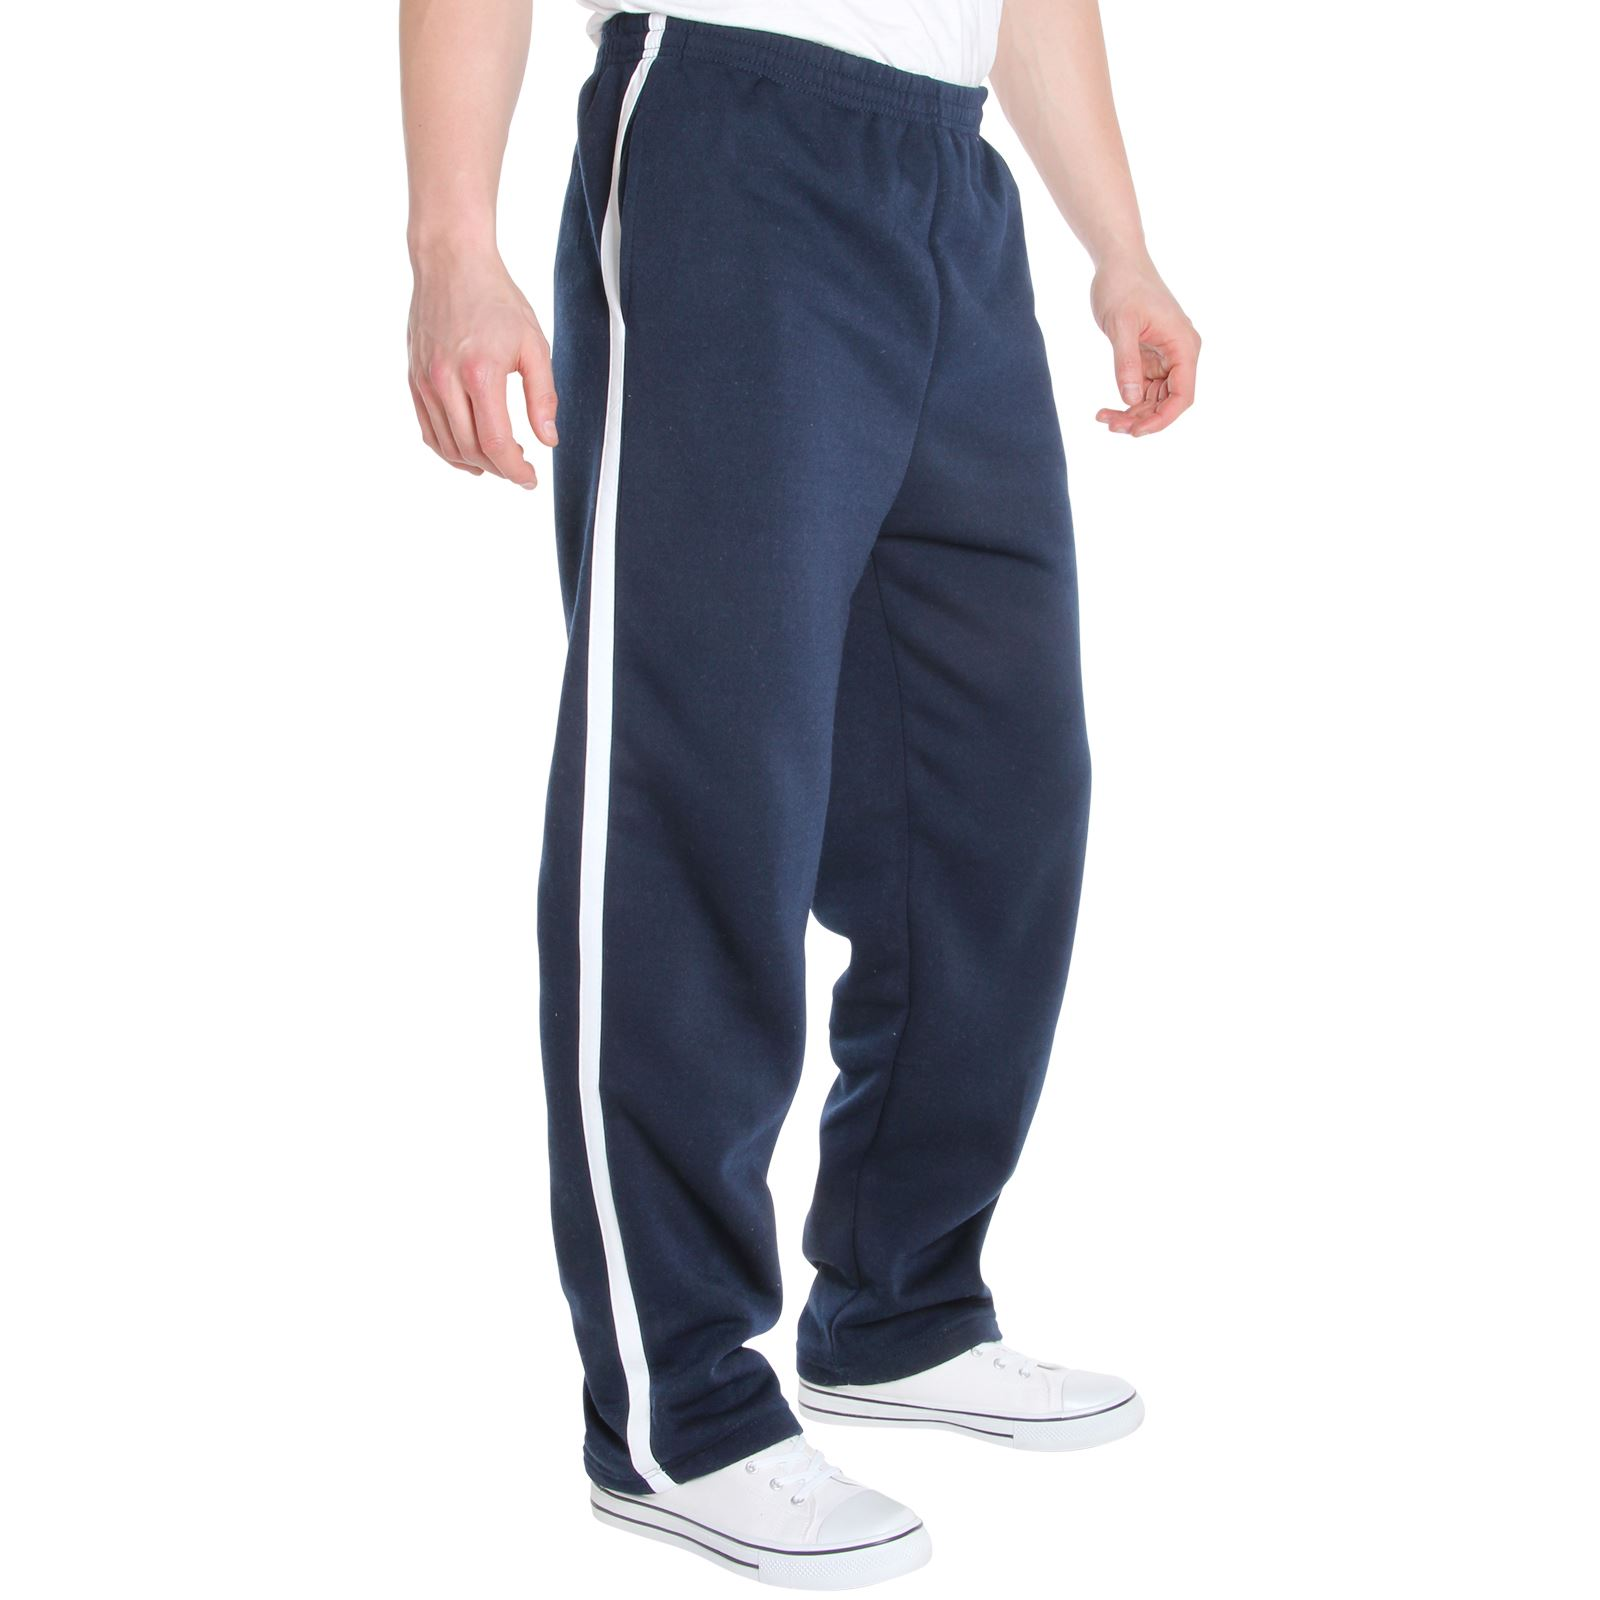 Mens-Tracksuit-Bottoms-Striped-Joggers-Jogging-Trousers-Fleece-Pants-Casual-Work thumbnail 36